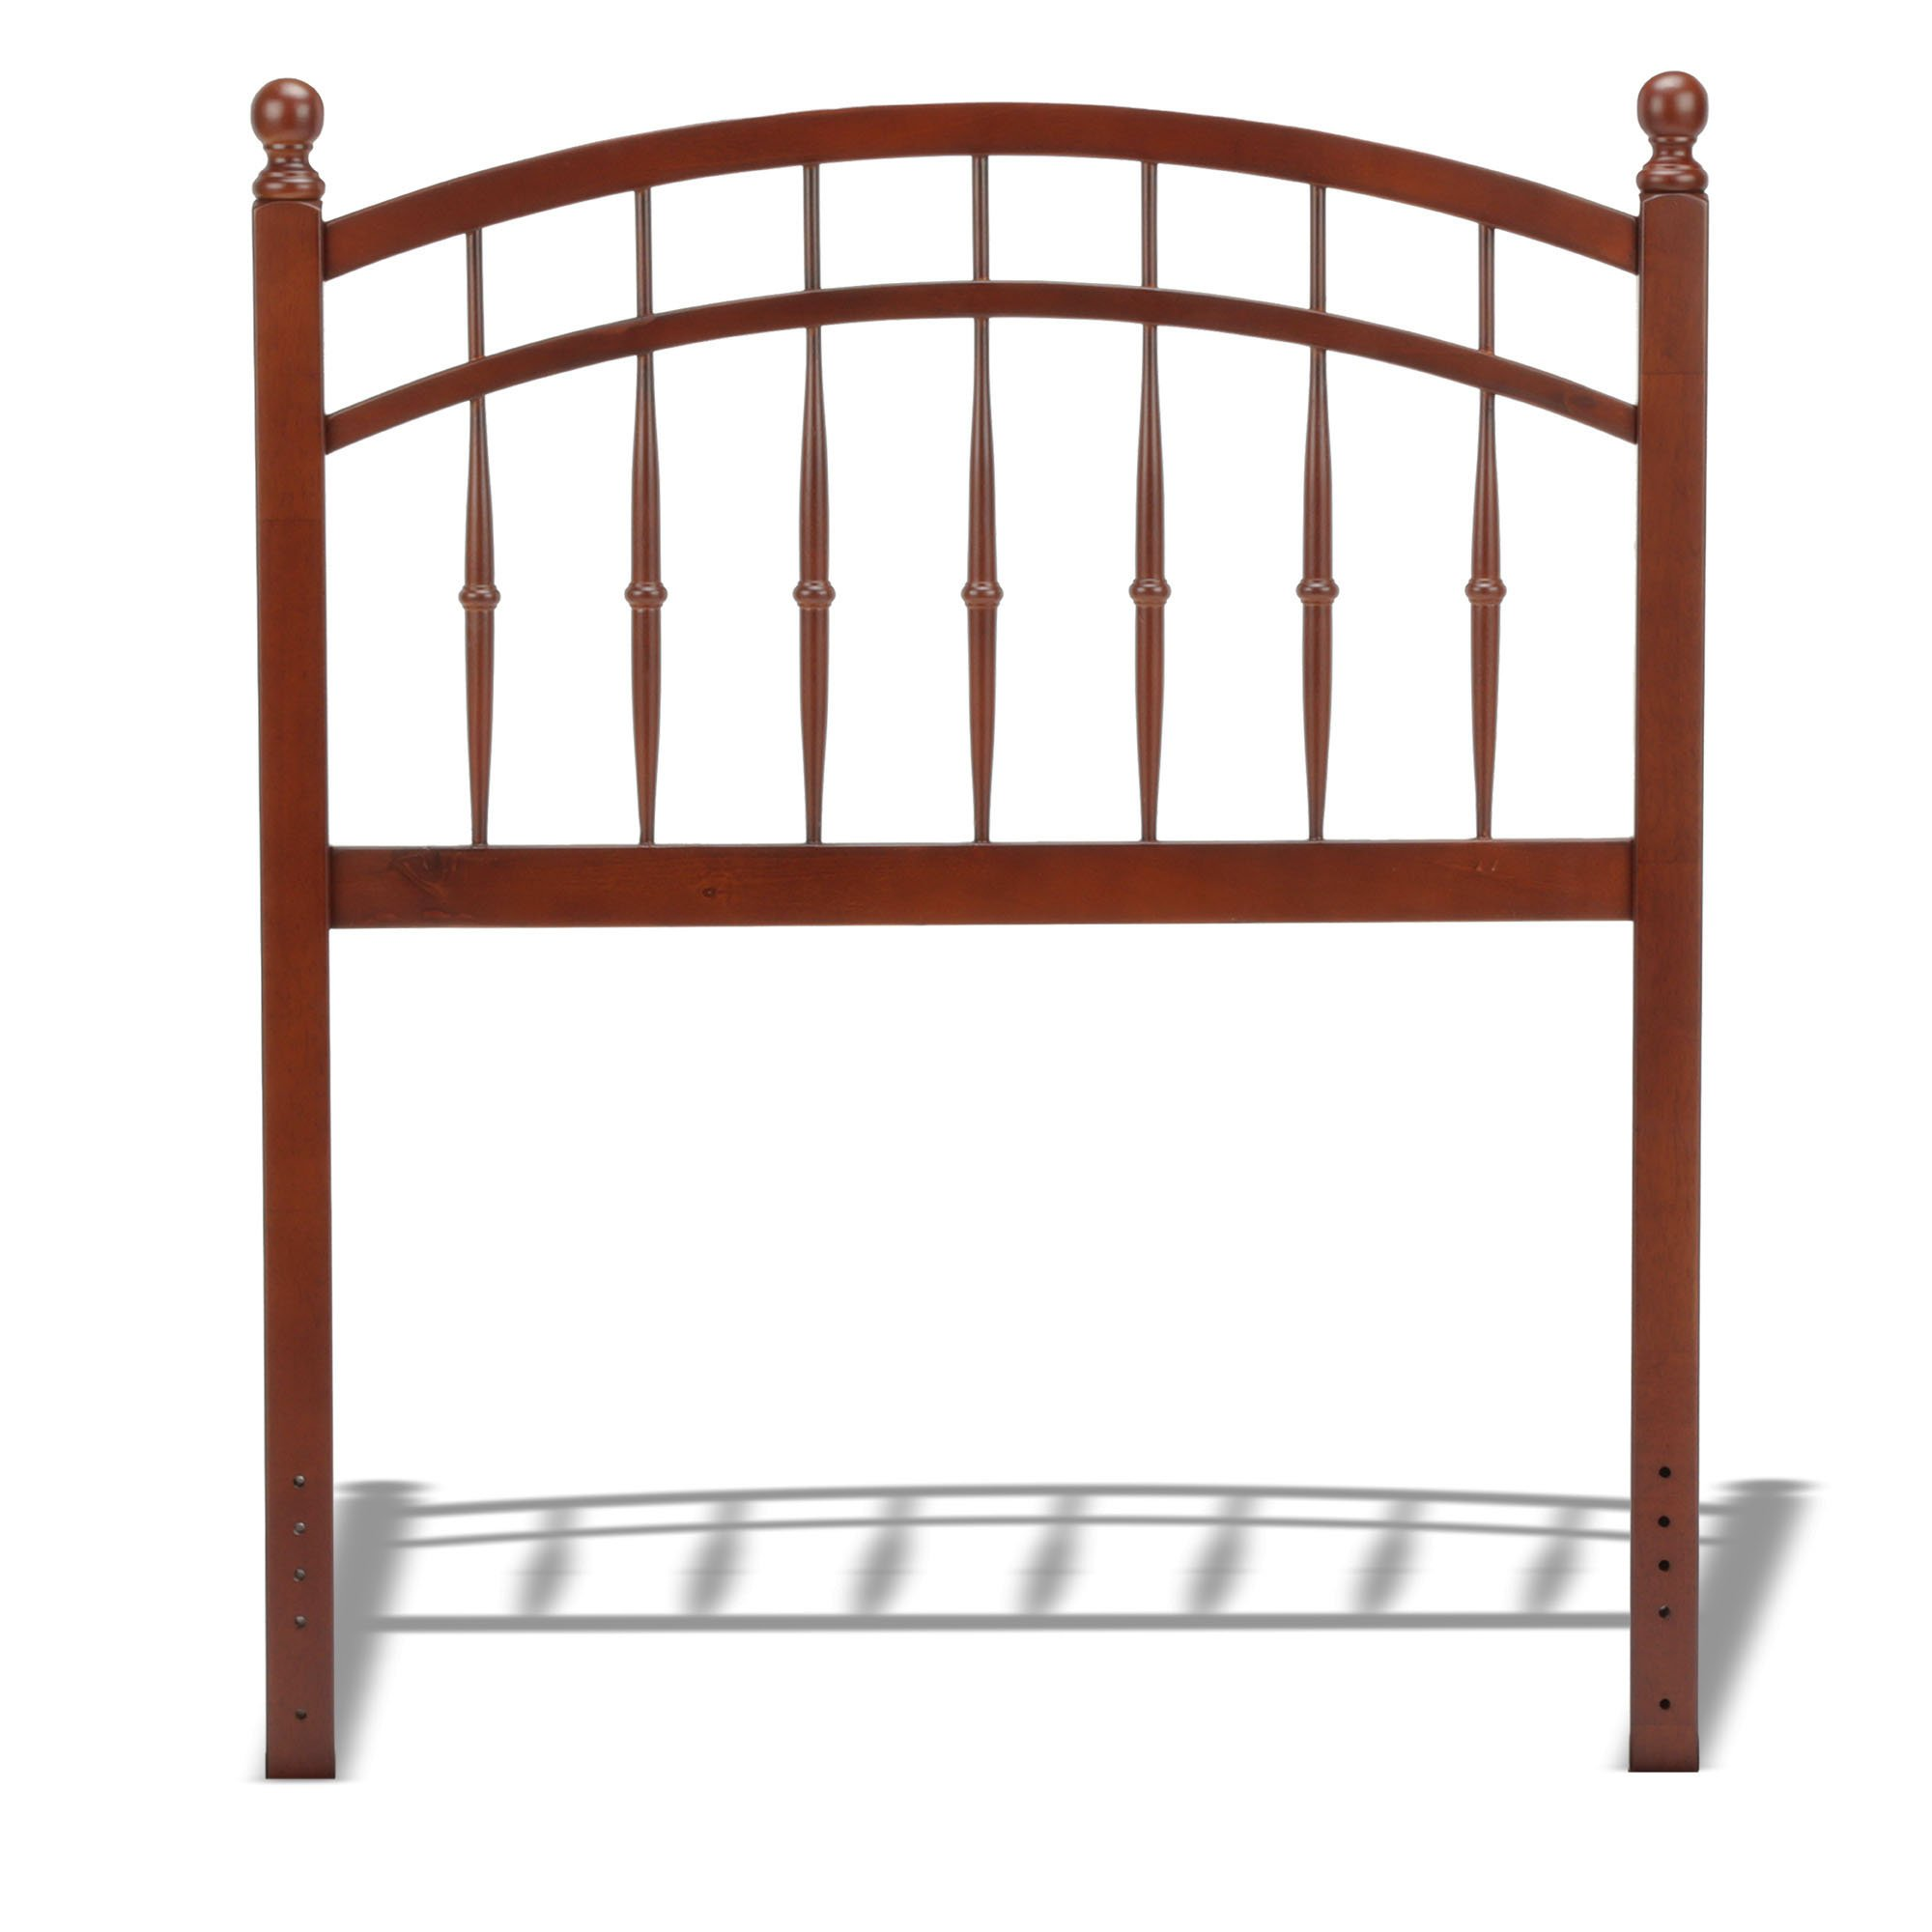 Fashion Bed Group Bailey Wooden Headboard Panel with Intricate Spindles and Round Post Finials, Merlot Finish, Twin